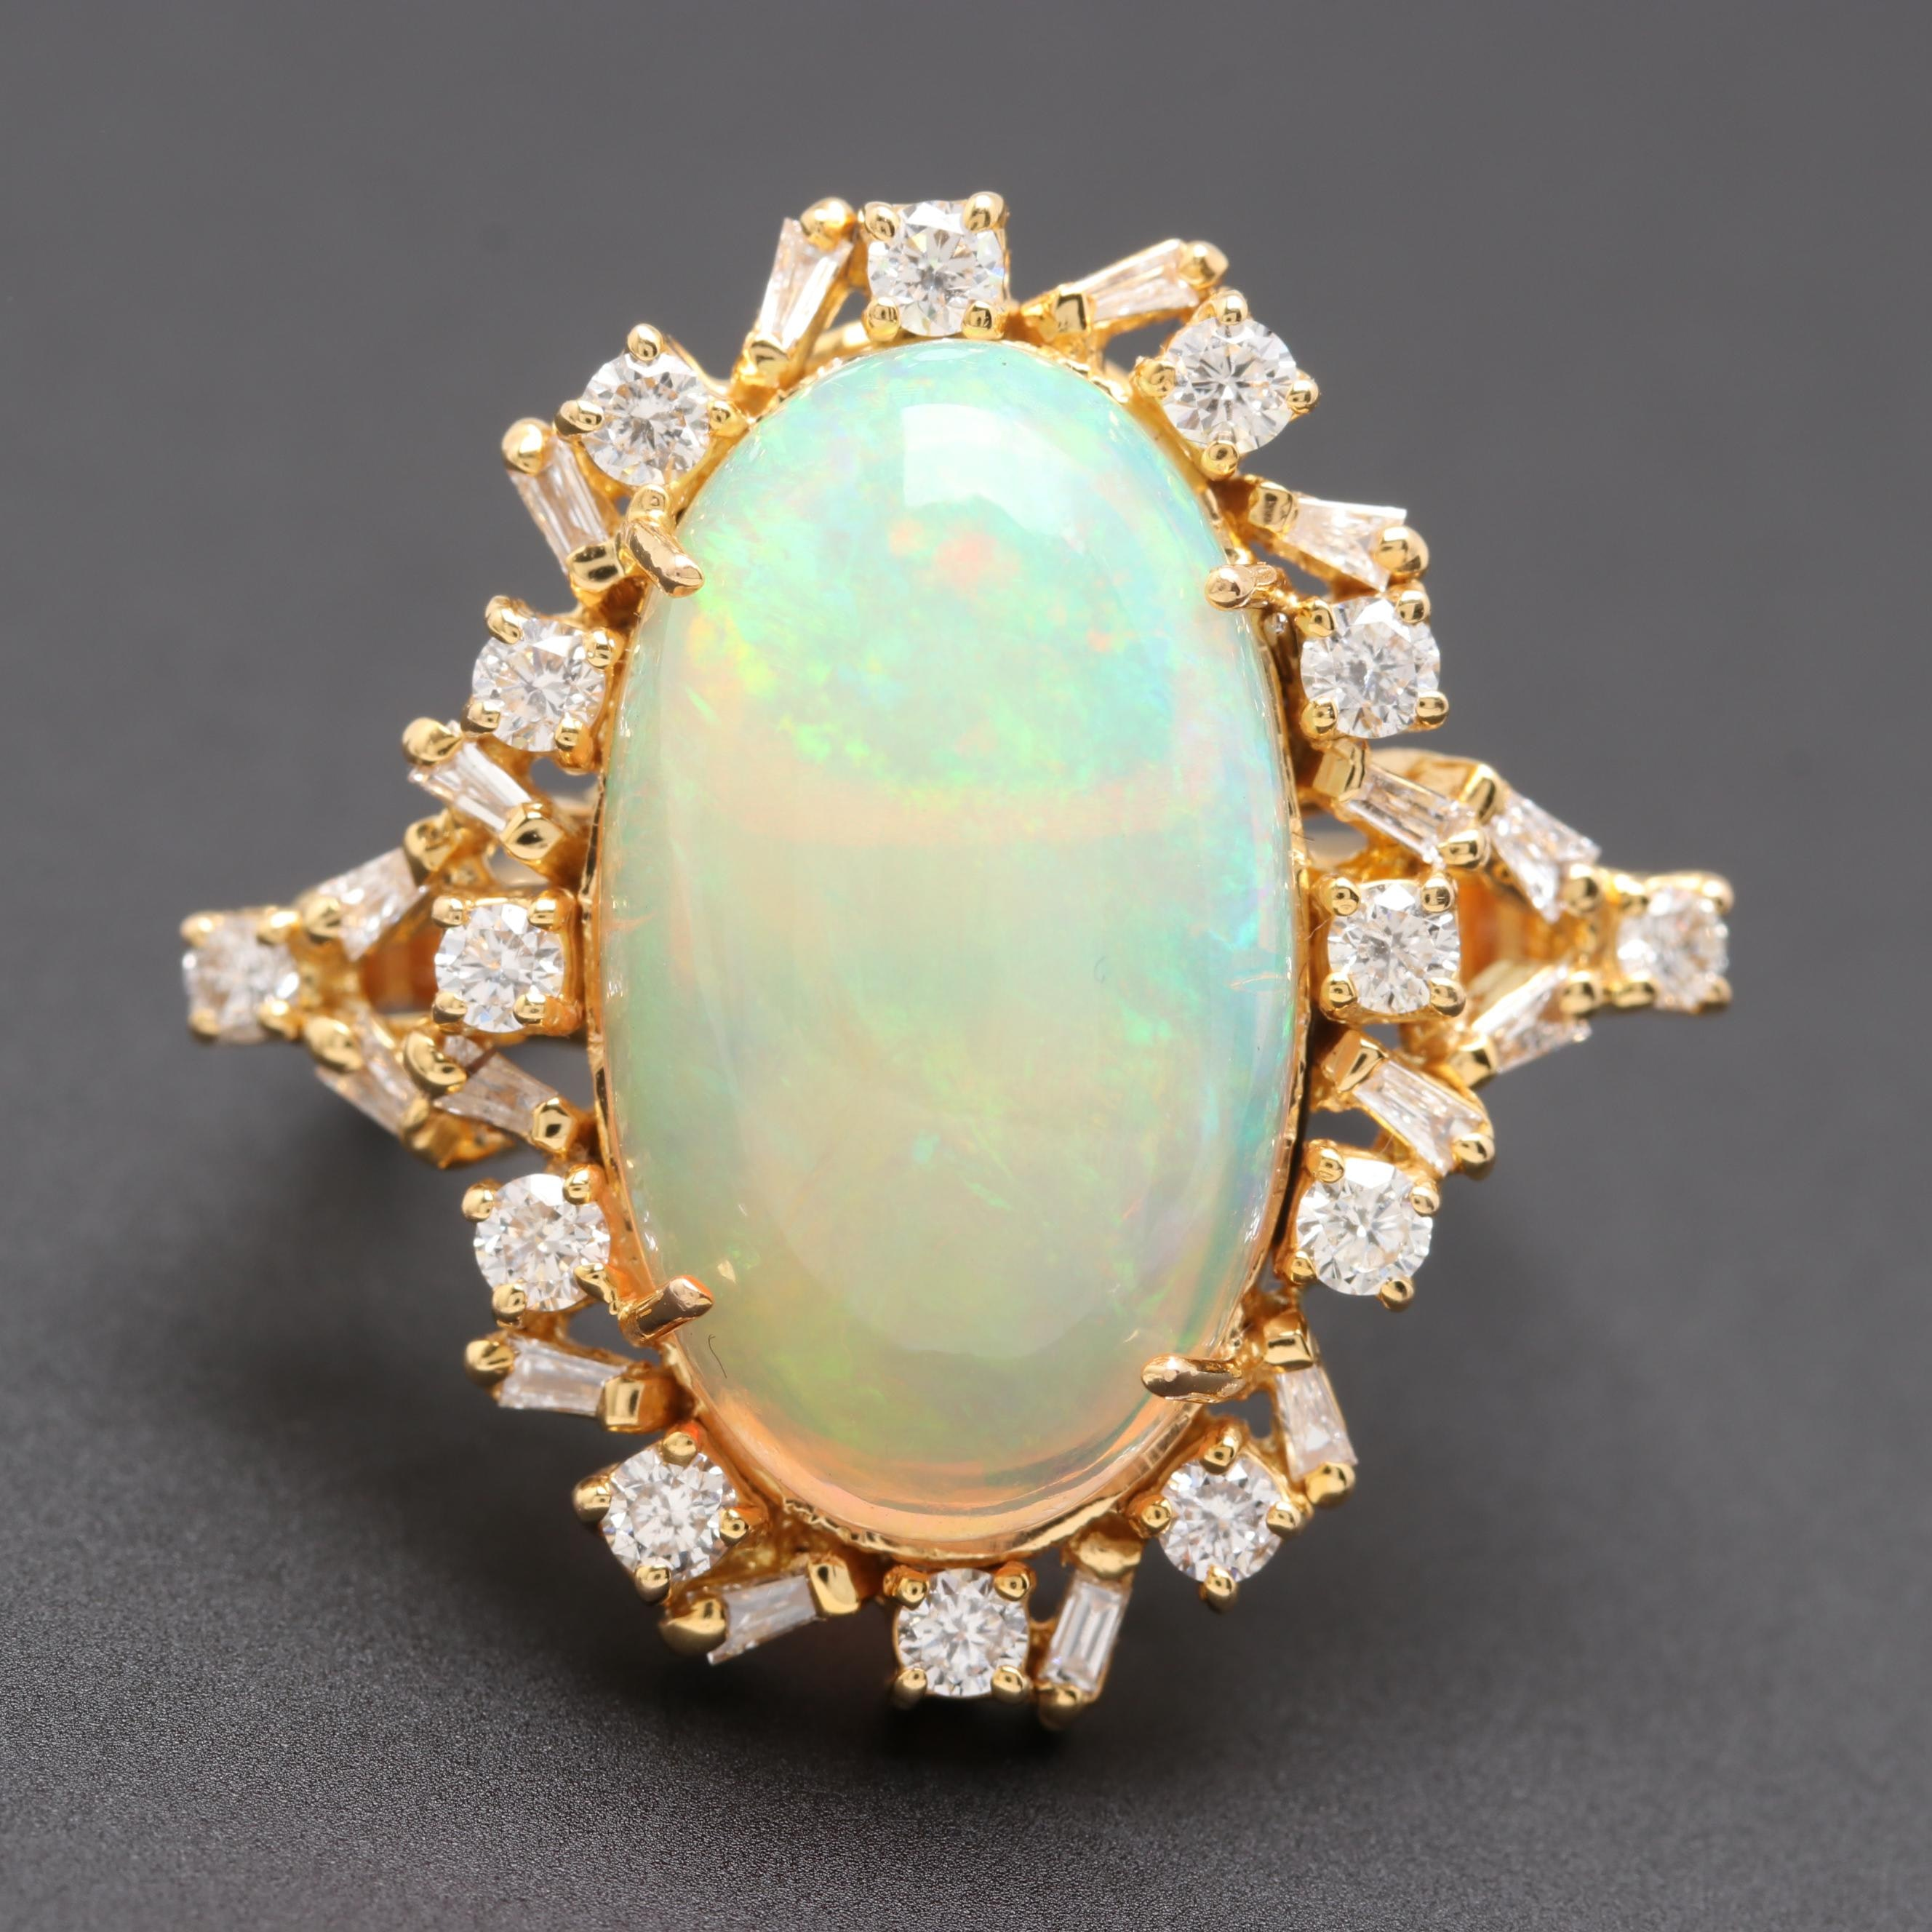 18K Yellow Gold 7.14 CT Jelly Opal and Diamond Cocktail Ring